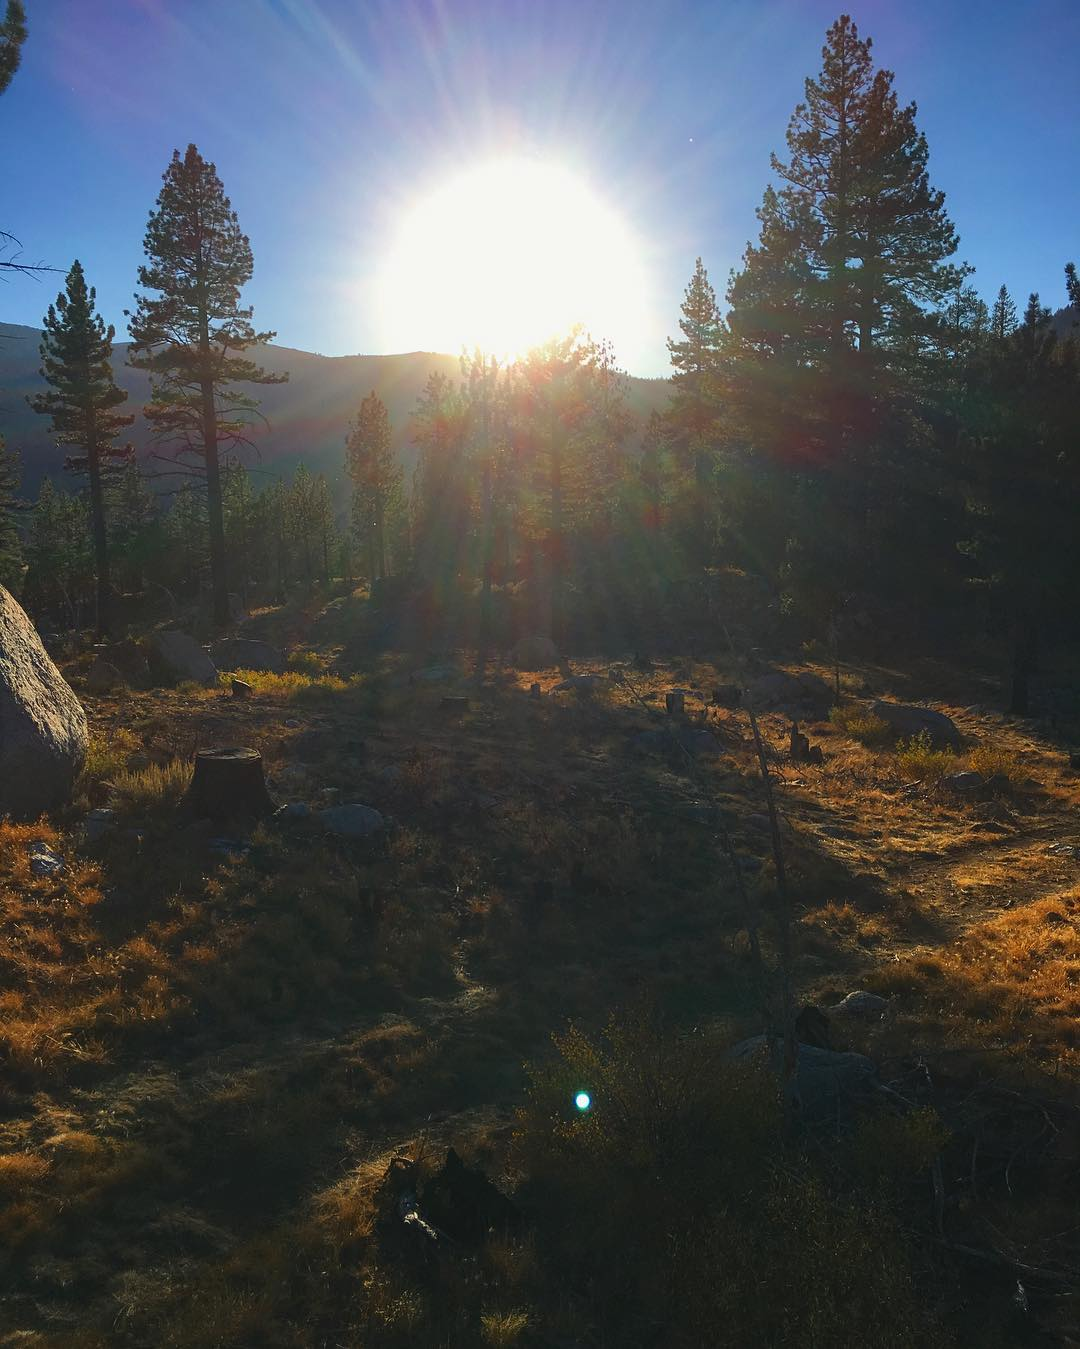 Fall sunsets in the woods. #inspiredbynature #drivenbydesign #risedesigns #risedesignstahoe #tahoelife #tahoesouth #hopevalley #sunburst